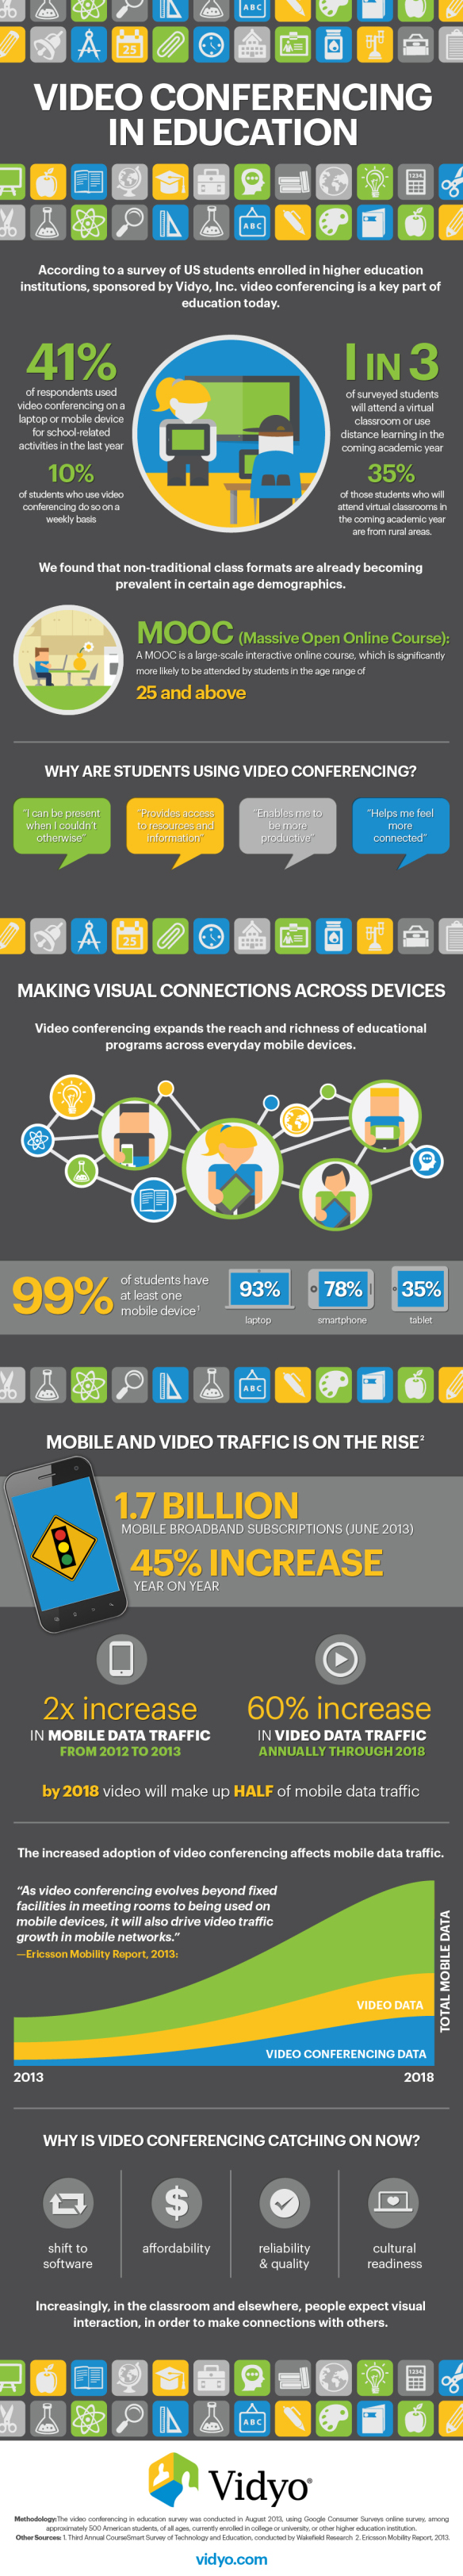 infographic_vidyo_videoconferencingineducation